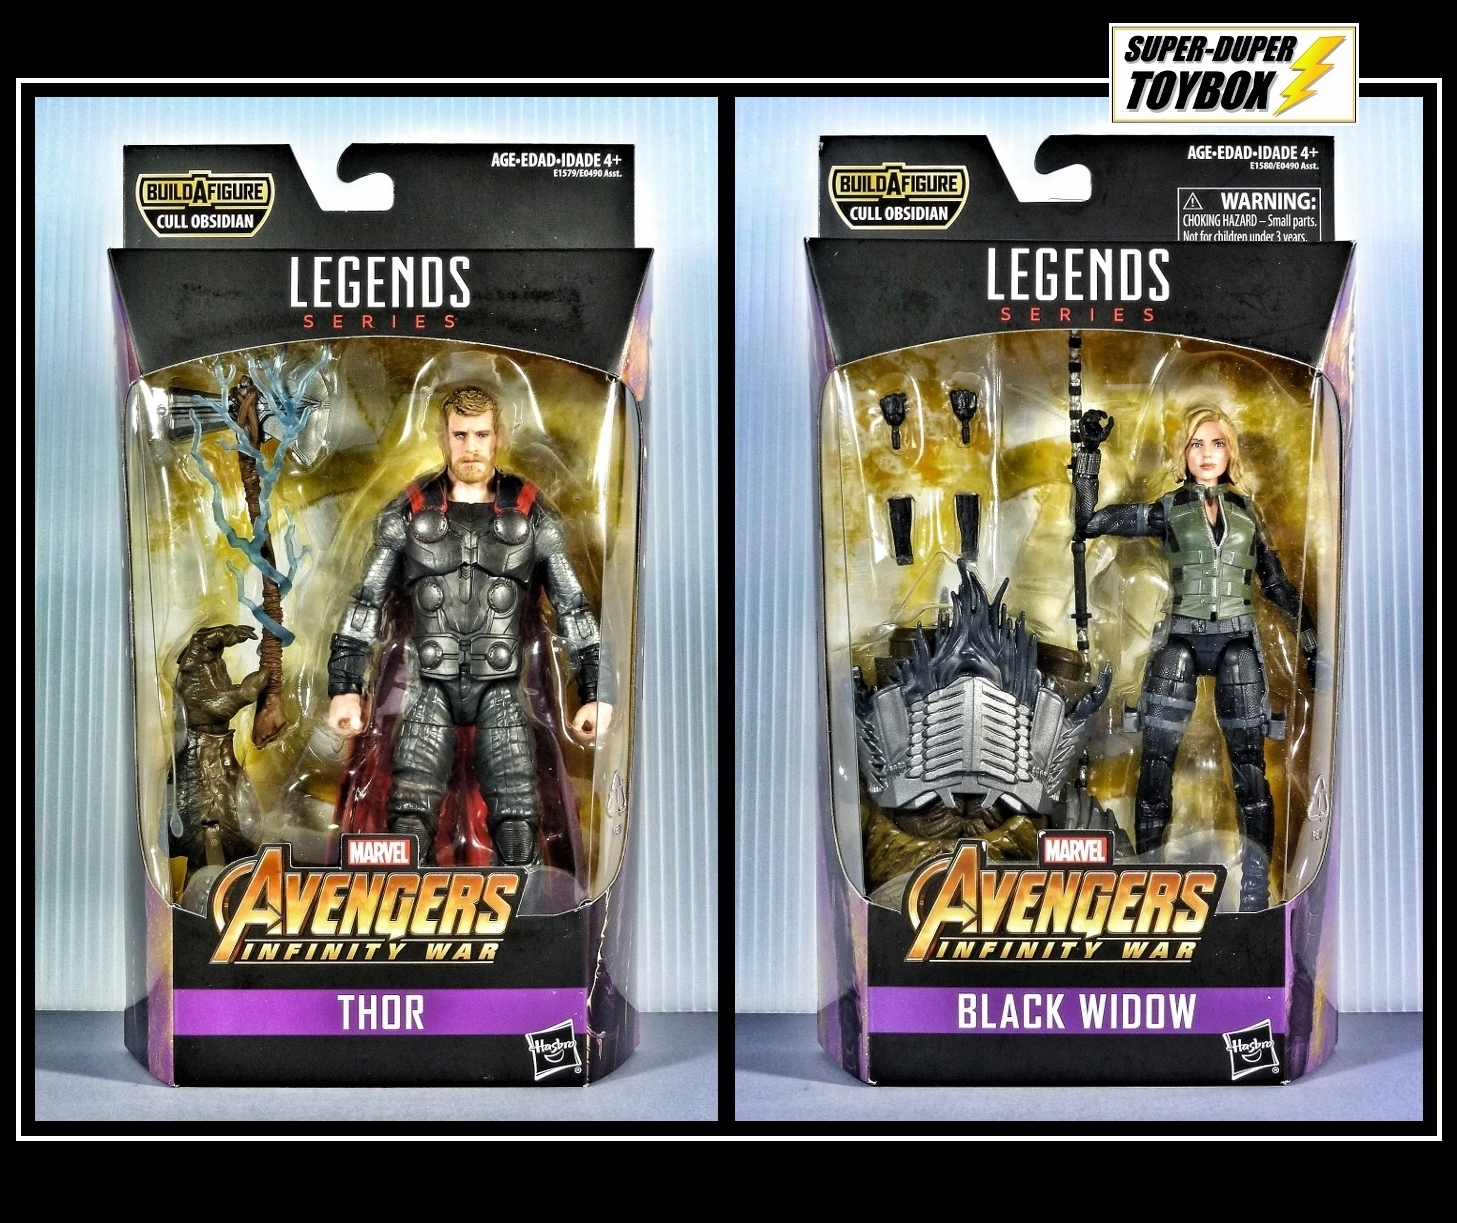 Super Dupertoybox Marvel Legends Thor Black Widow